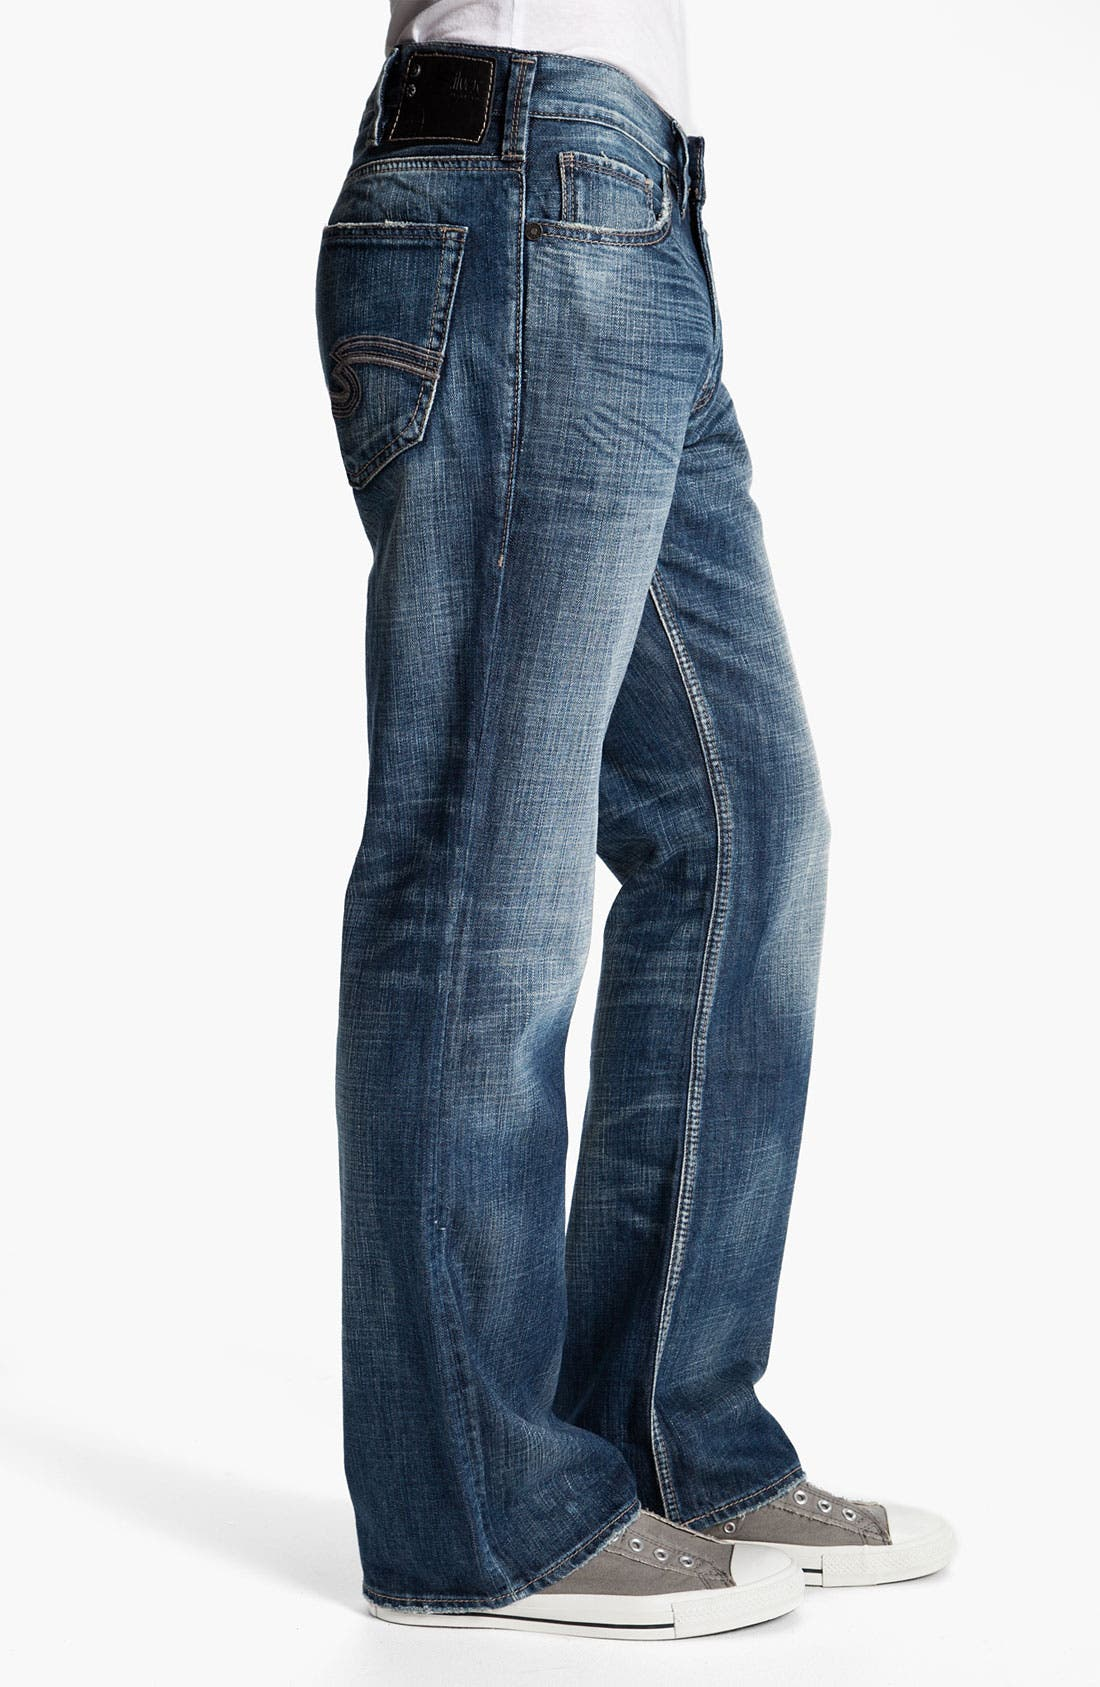 Alternate Image 3  - Silver Jeans Co. 'Grayson' Relaxed Bootcut Jeans (Indigo)